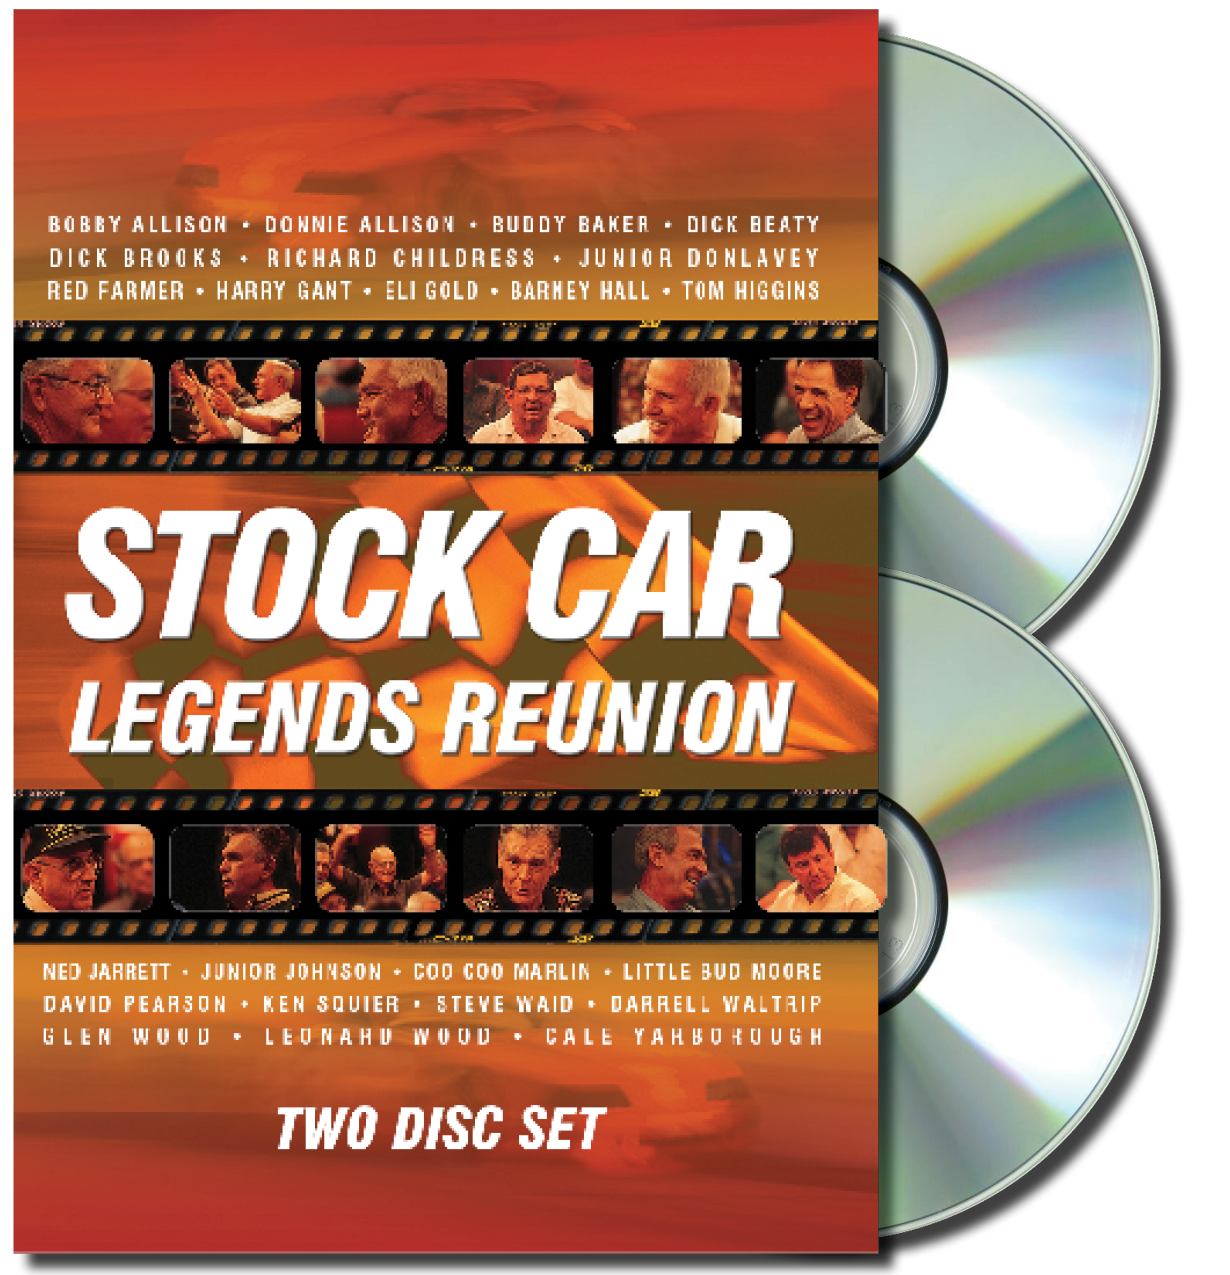 Stockcar Legends Reunion